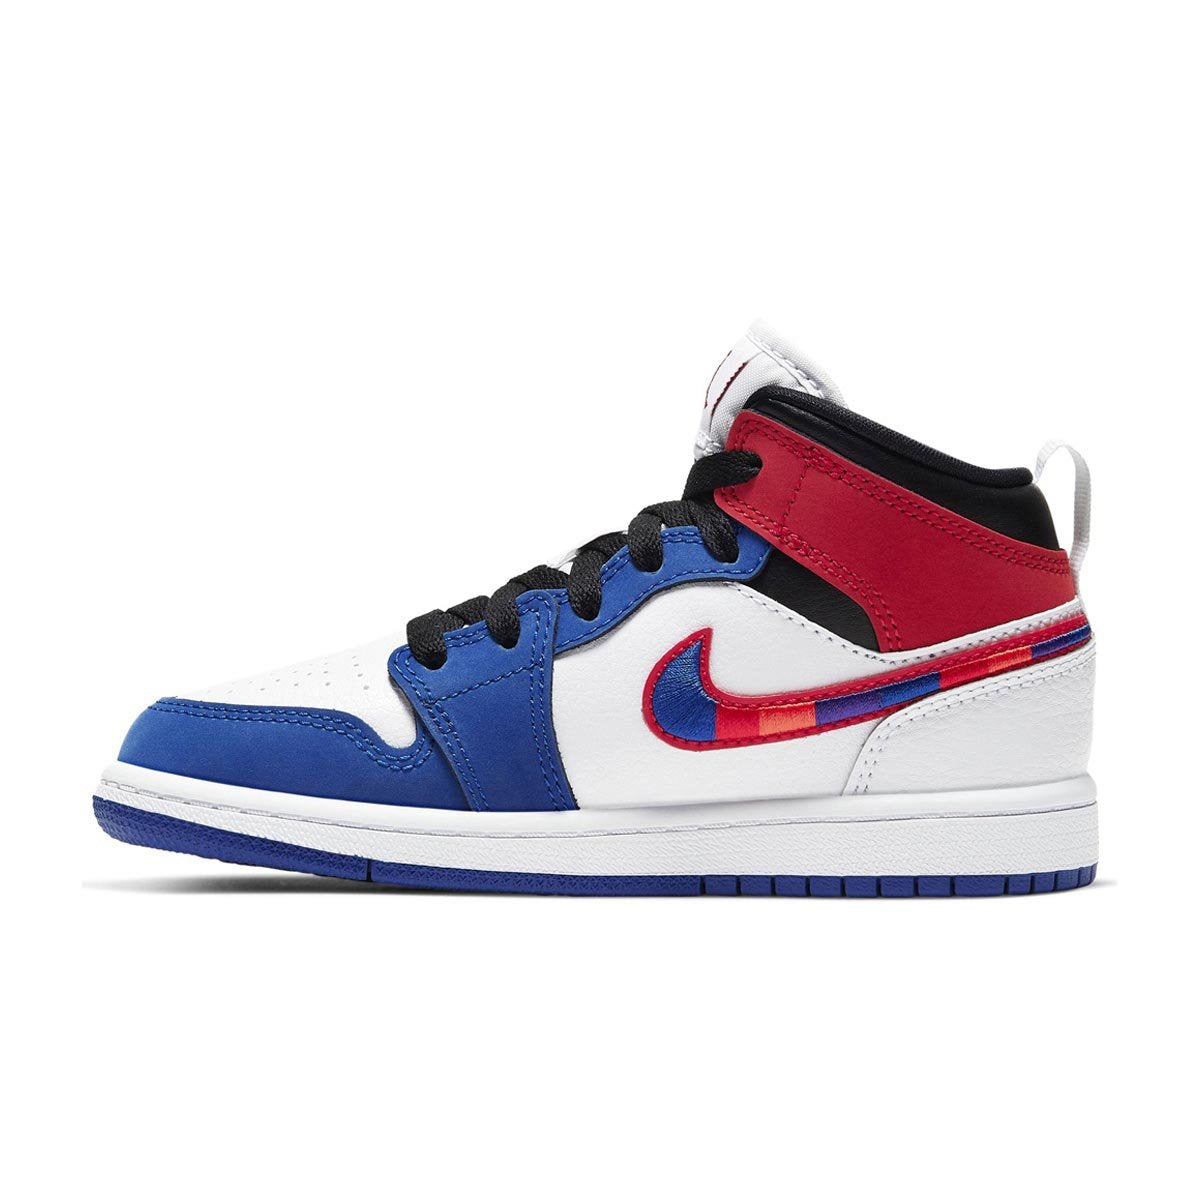 Little Kids Jordan 1 Mid SE